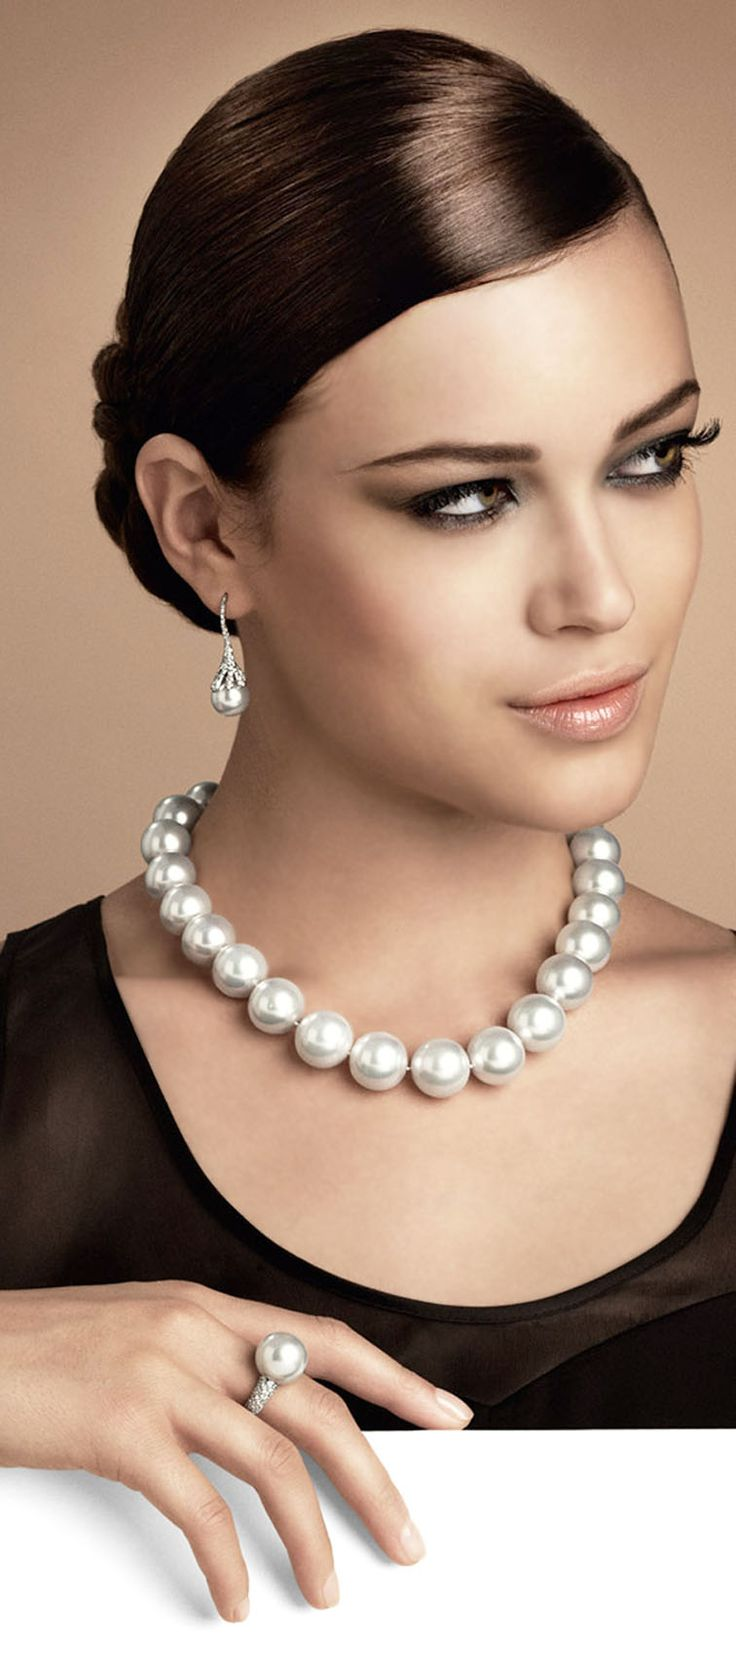 Class, Elegance and Charm is what Bella Donna is all about...YES, SHE IS AS I KNOW AND LOVE YOU SO....Mikimoto Jewellery by Les Ambassadeurs WE ALL LOVE YOU BELLA DONNA....VERY MUCH!